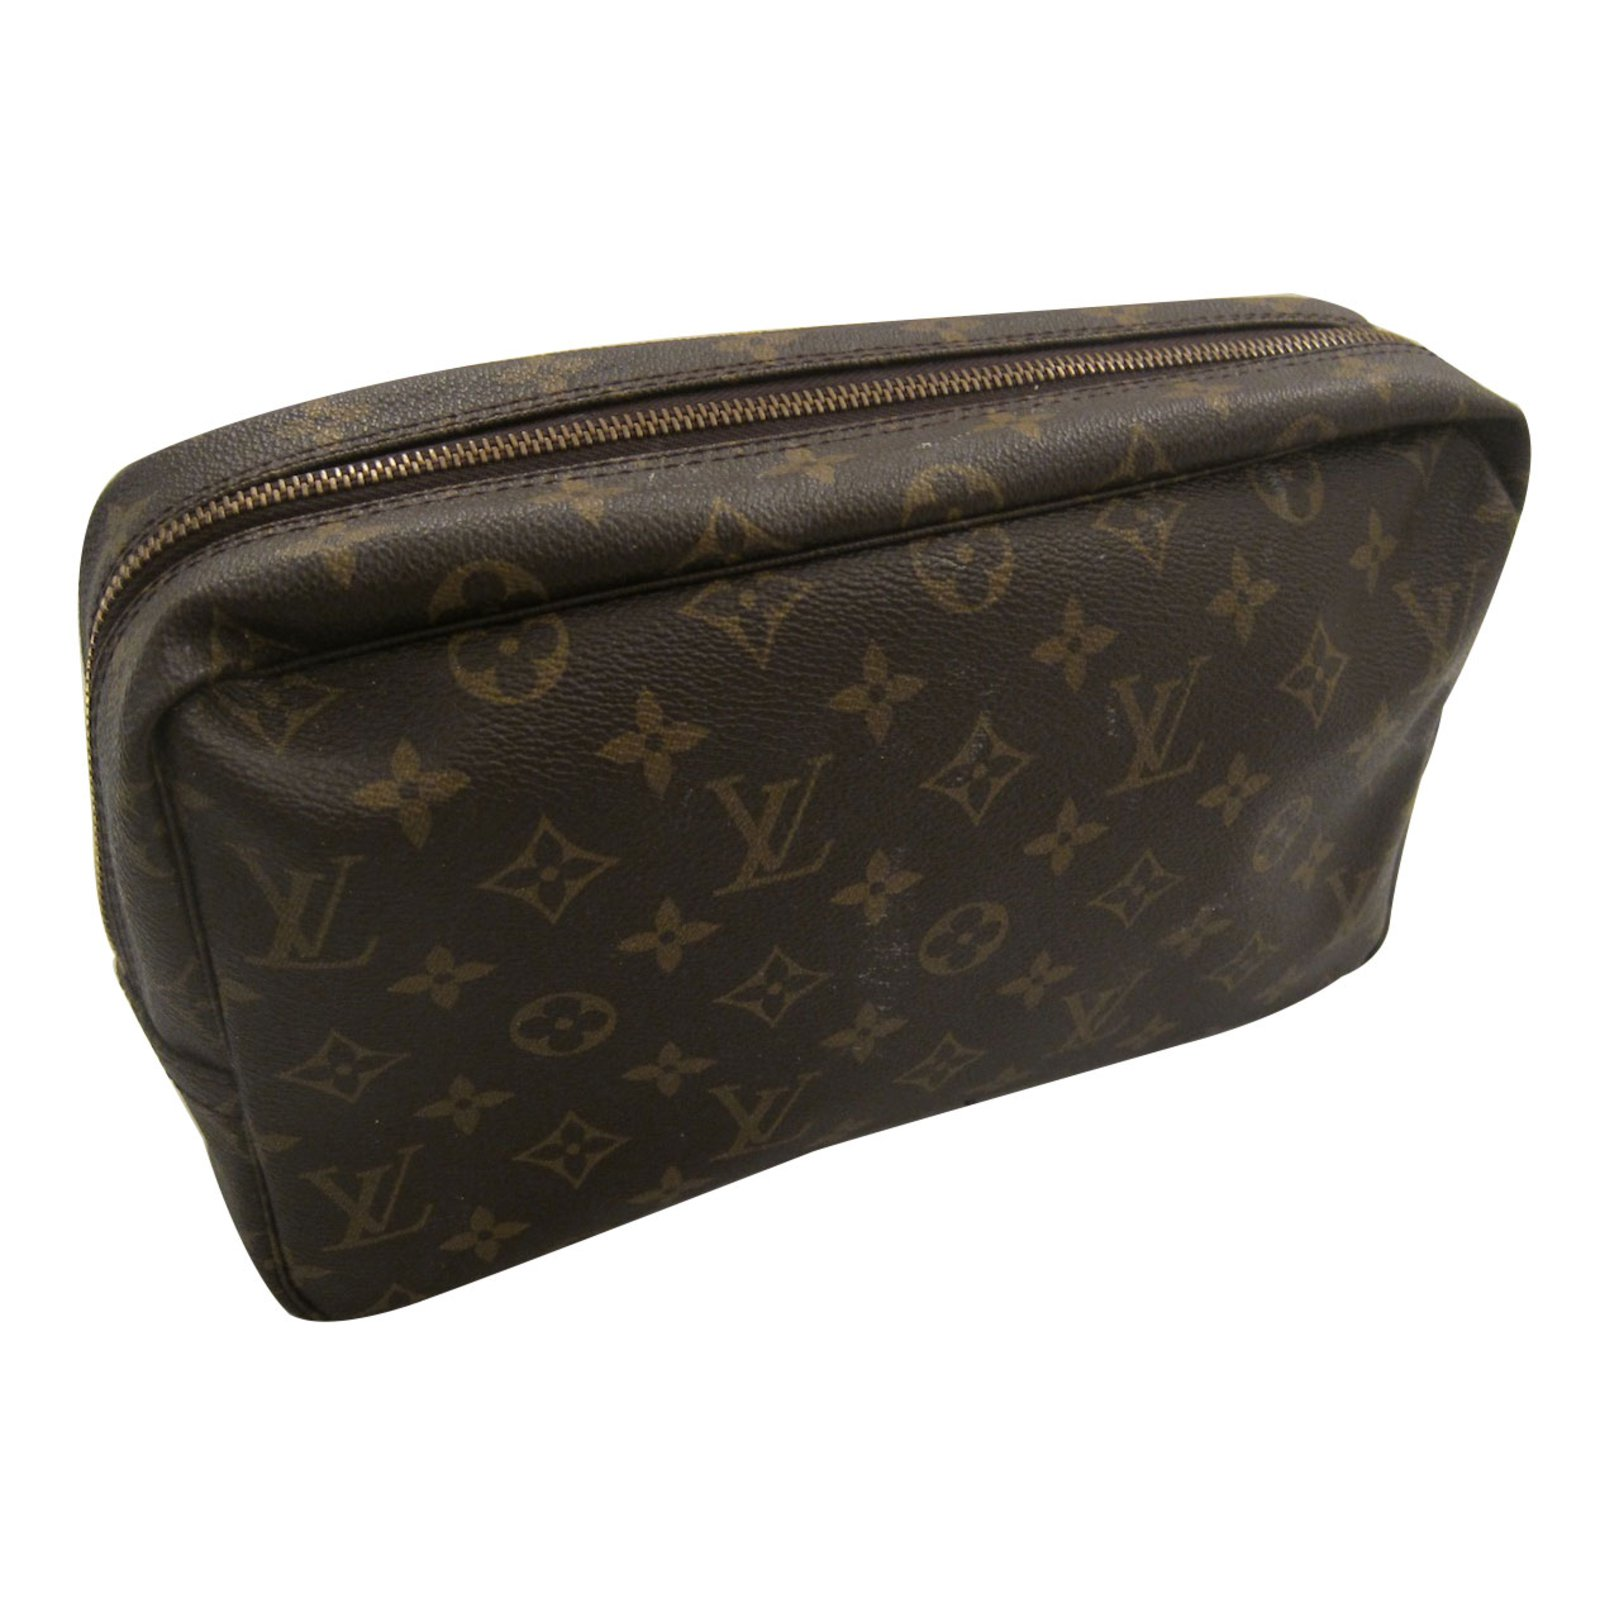 trousse de toilette louis vuitton femme sema data co op